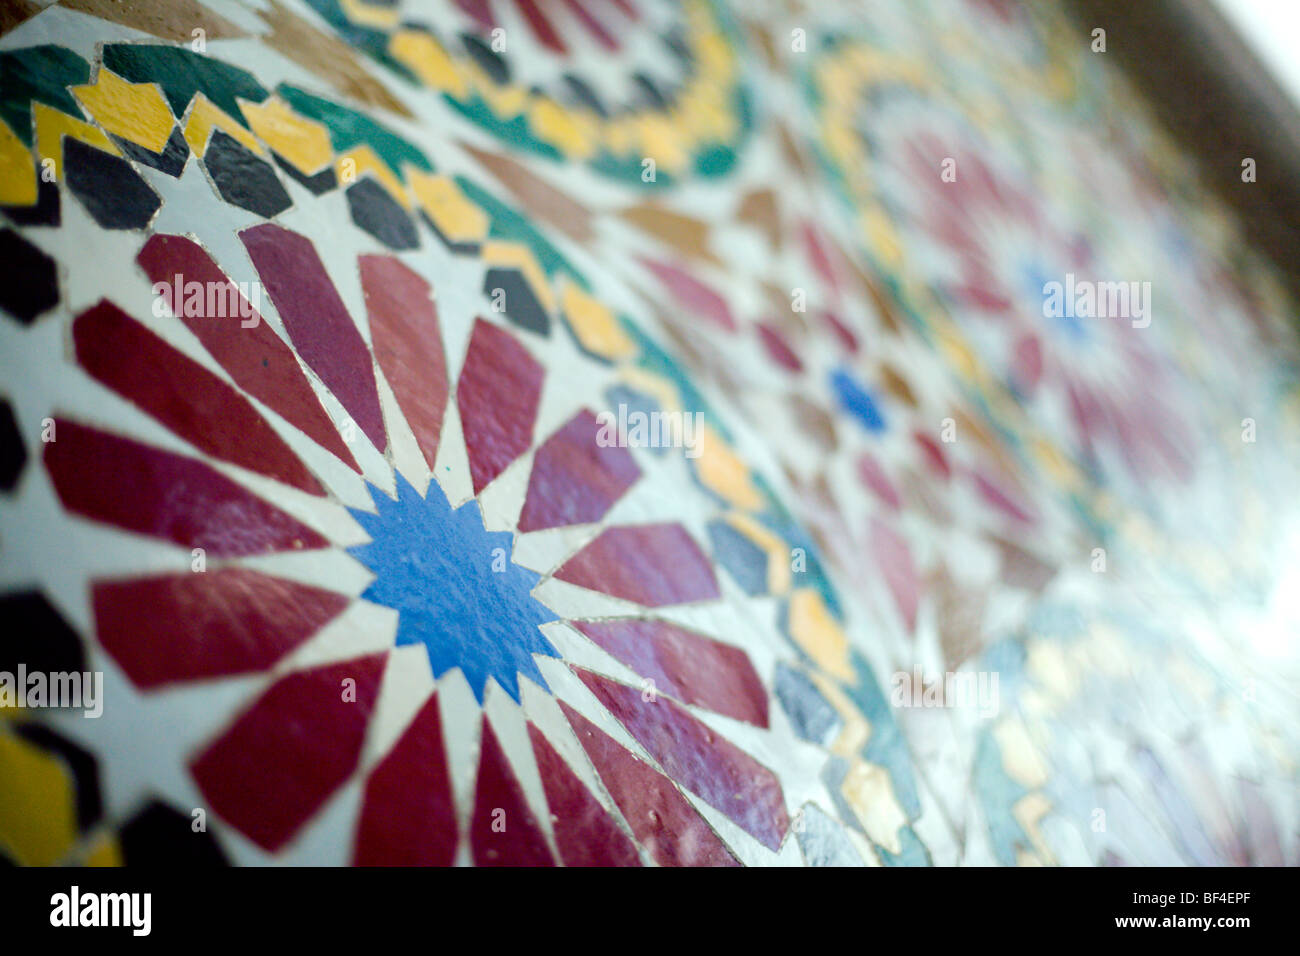 Mosaic at the Hassan II Mosque in Casablanca - Stock Image